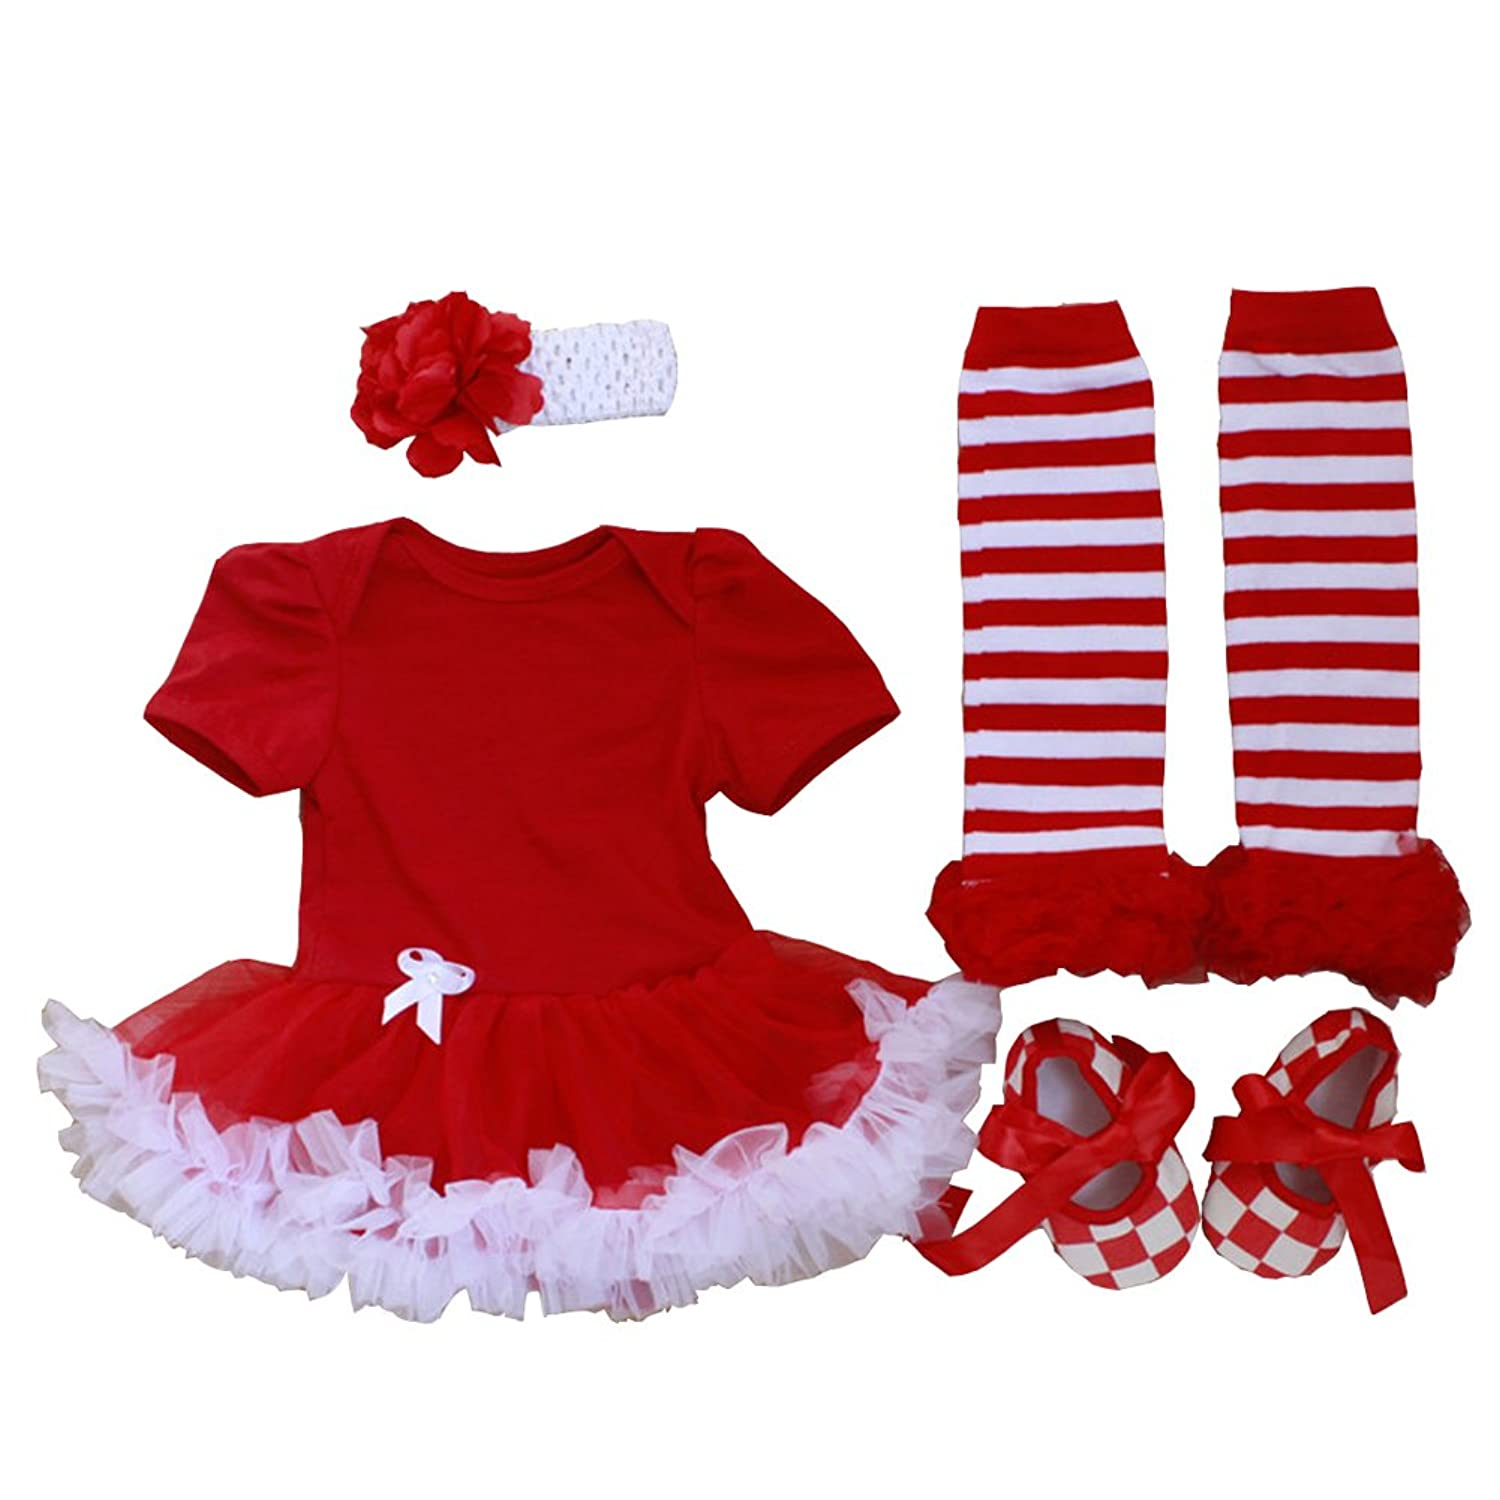 Carters Christmas Dress hd gallery